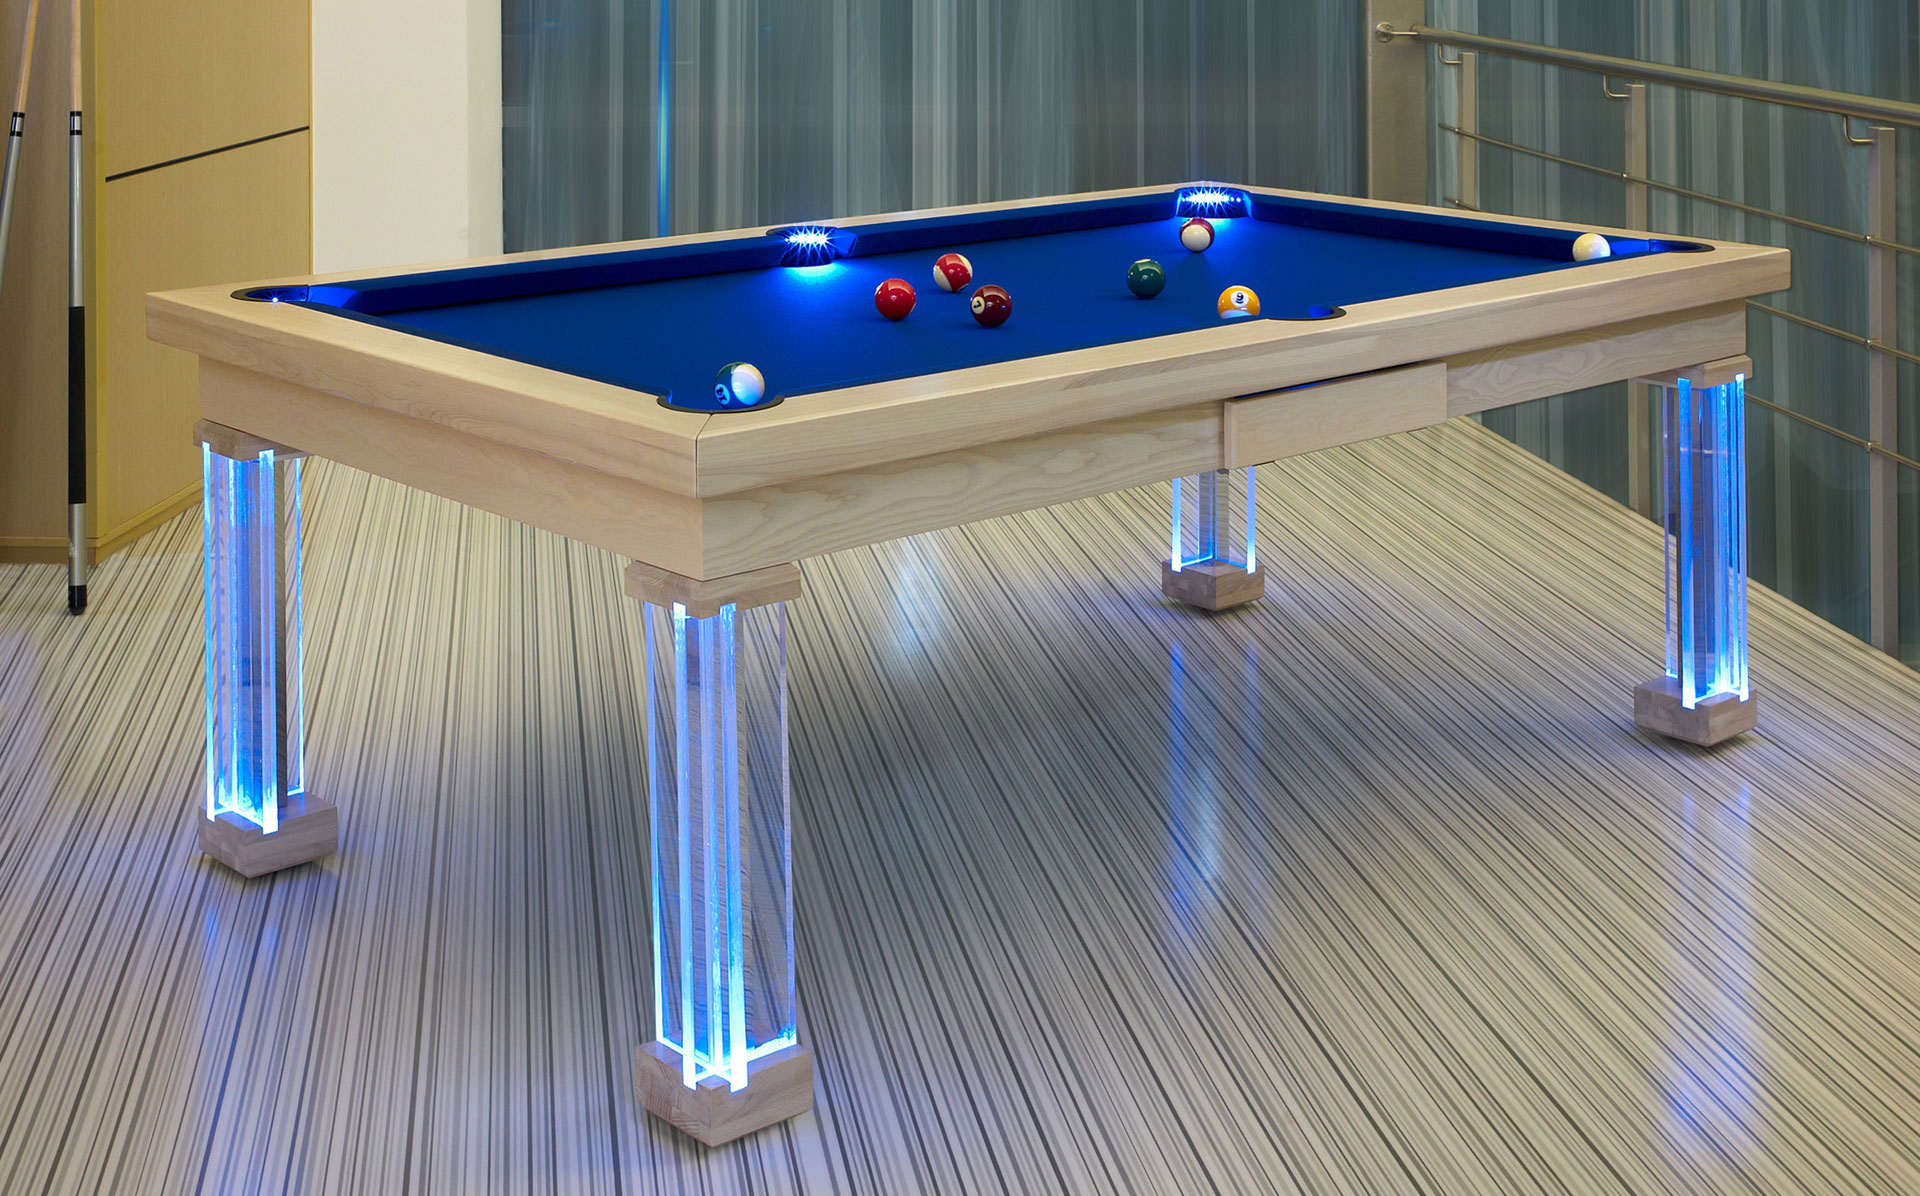 Modern Pool Table Luxury Pool Tables : ModernPoolTableLEDs from luxury-pool-tables.co.uk size 1920 x 1196 jpeg 487kB